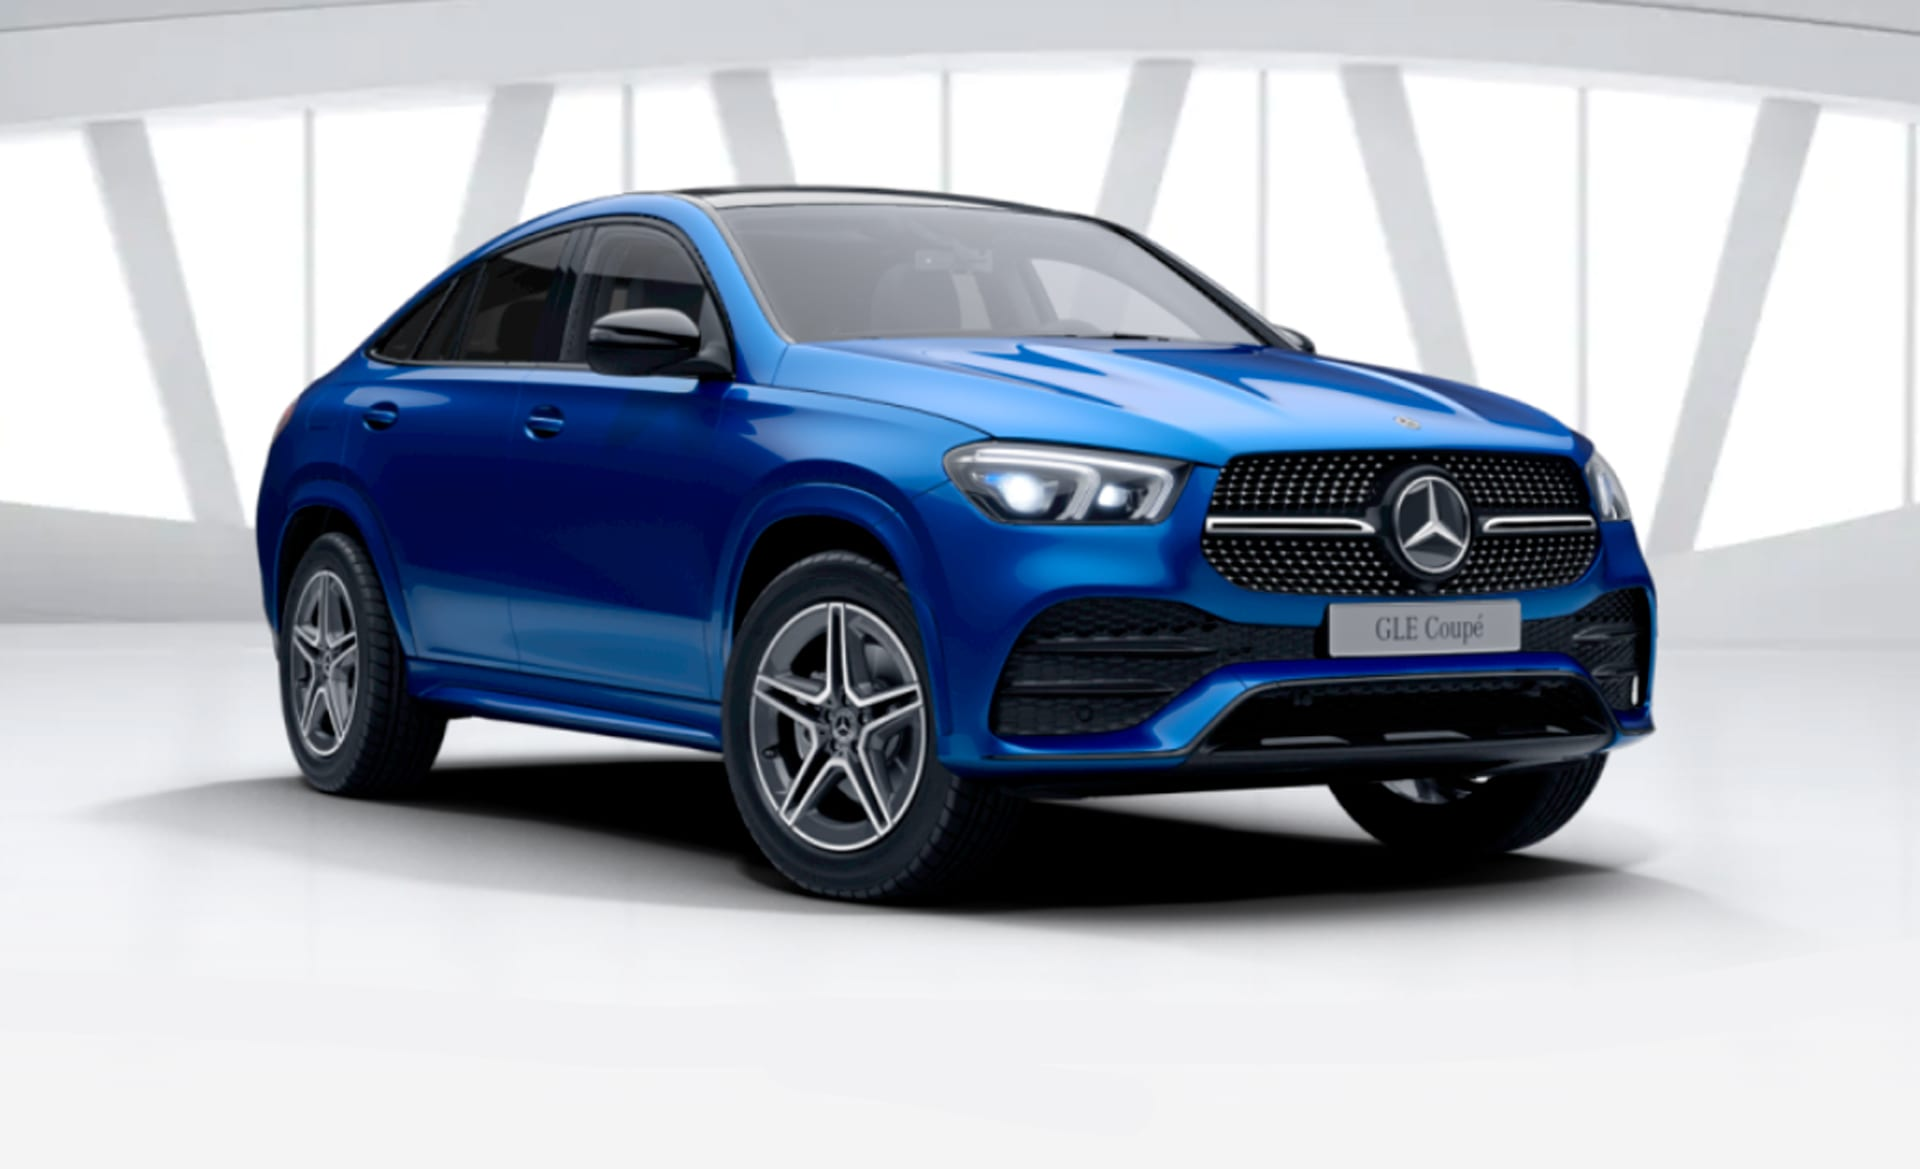 Mercedes-Benz GLE Coupe 0152600685